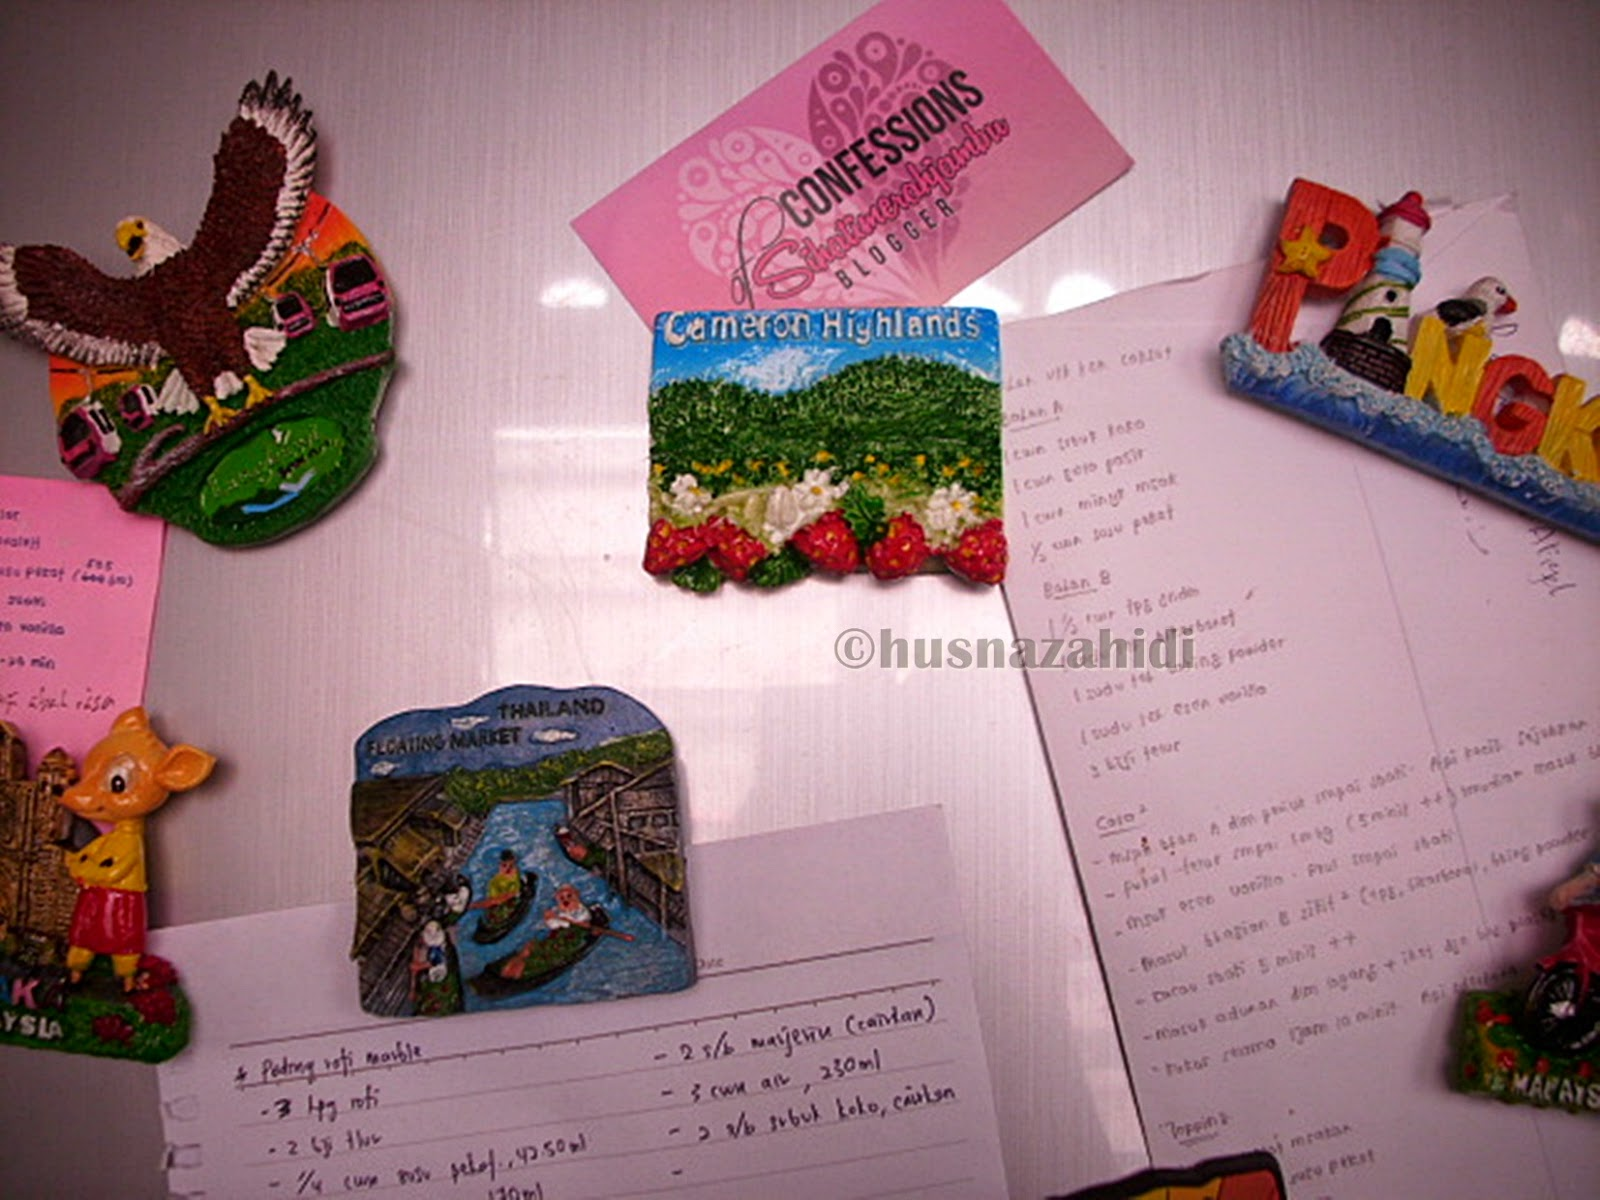 fridge magnet, Cameron Highlands